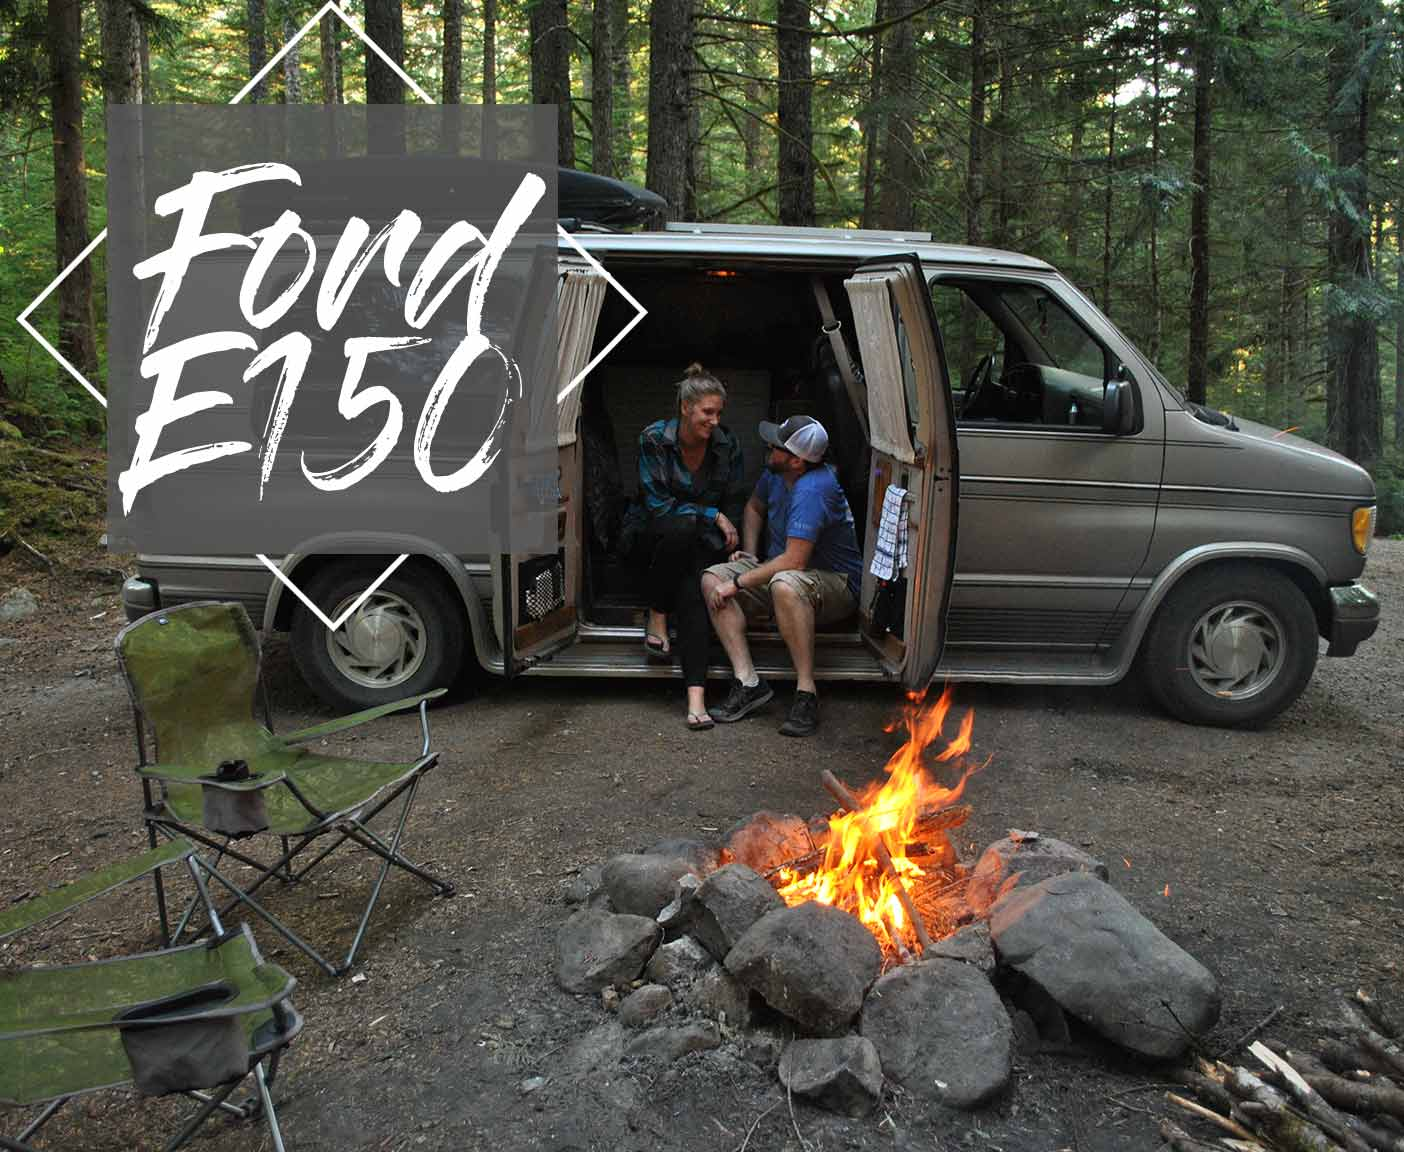 Ford E150 - more space for less money